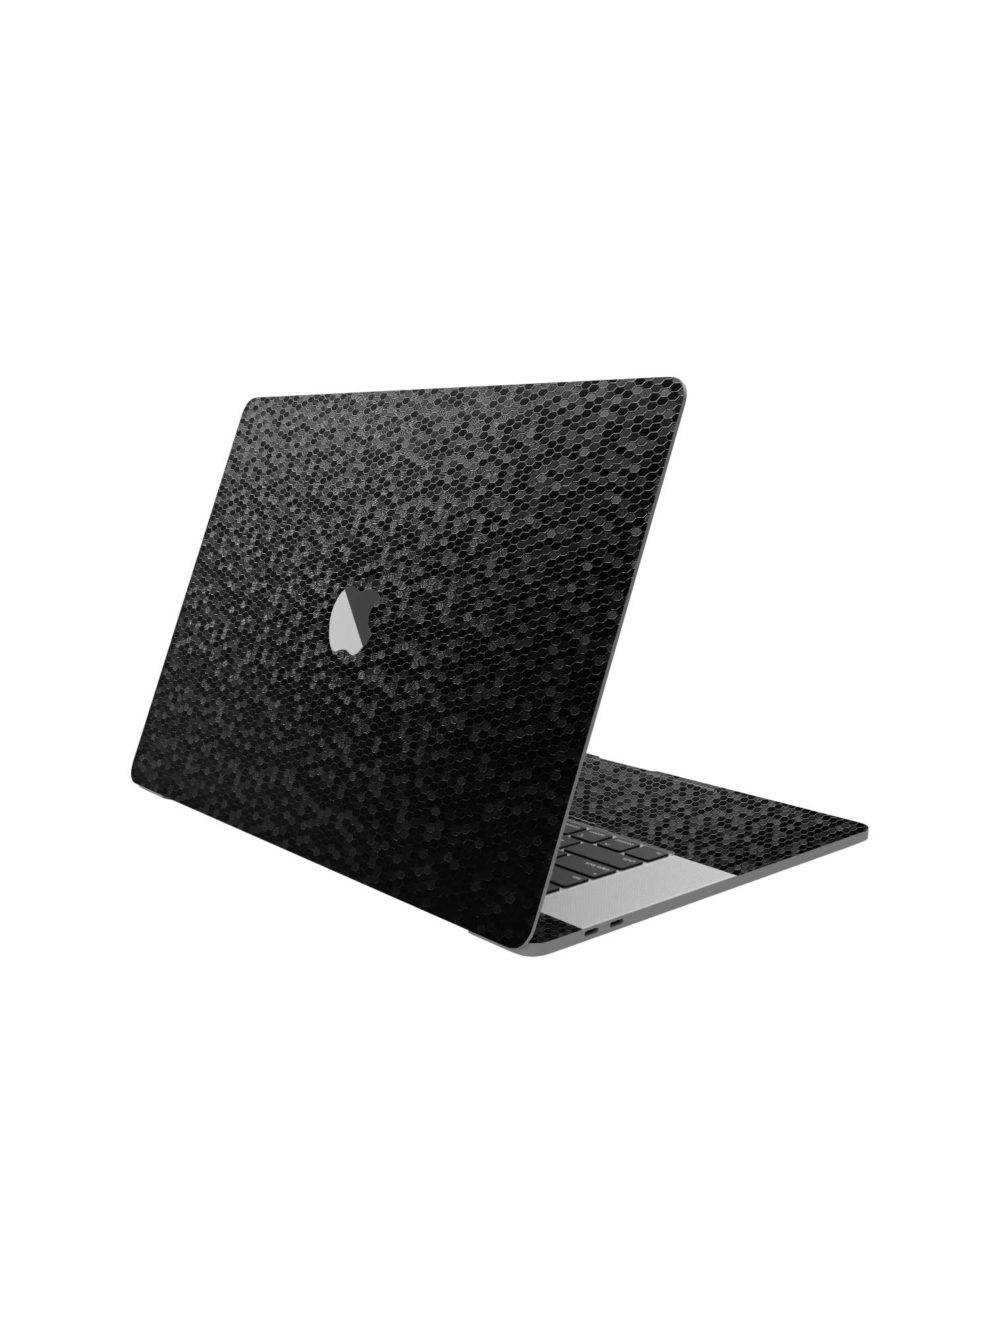 Black 3D Honeycomb Skin for Apple Macbook Pro M1 2020